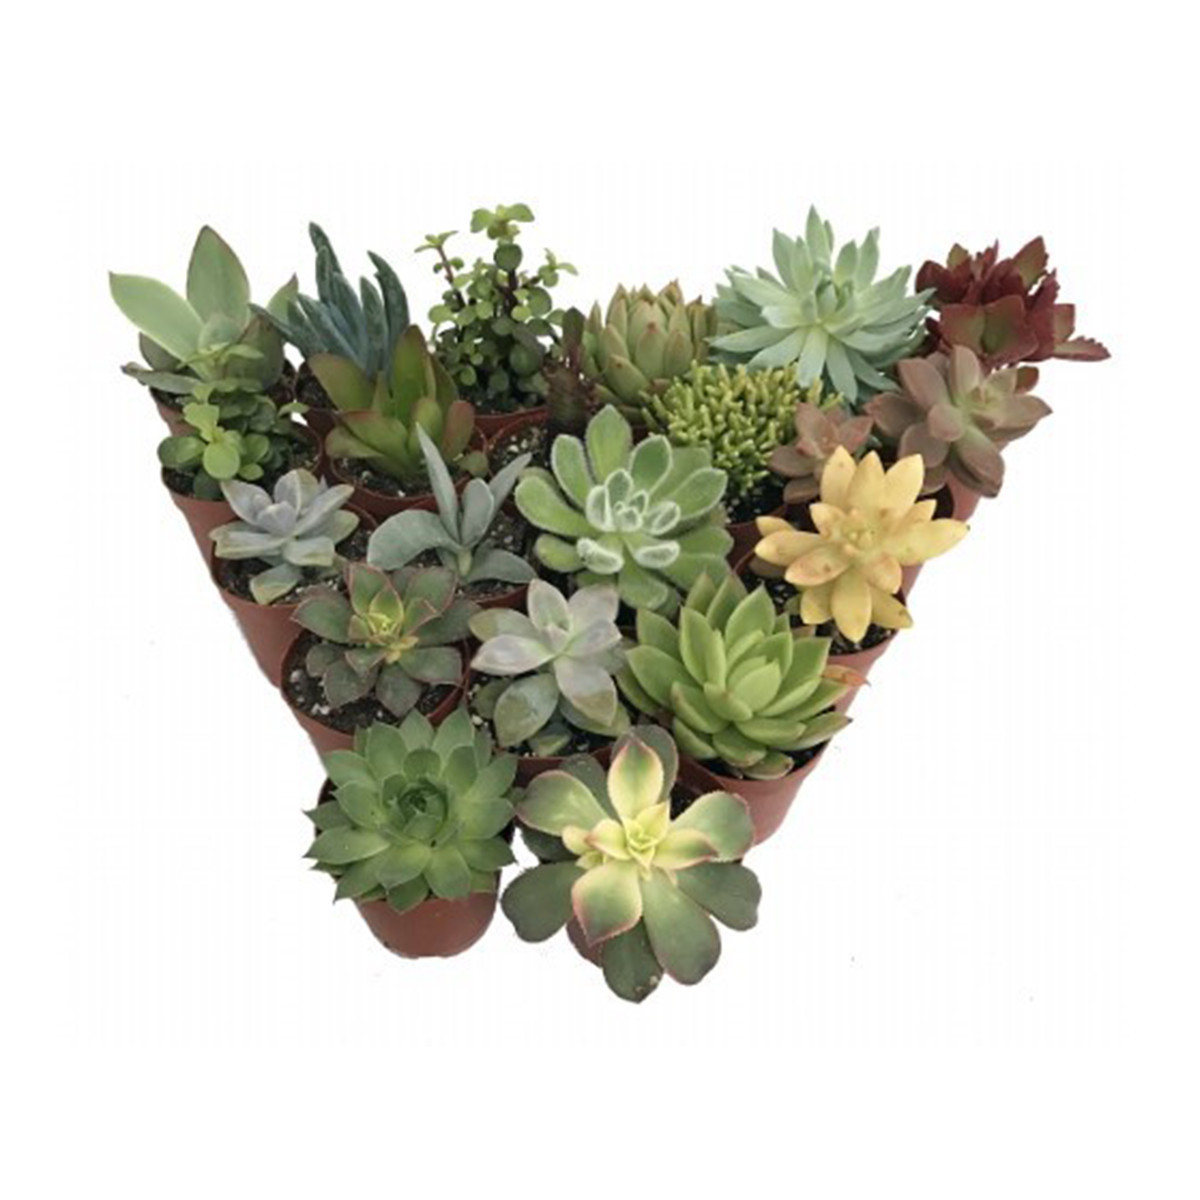 Group of different succulent plants photo